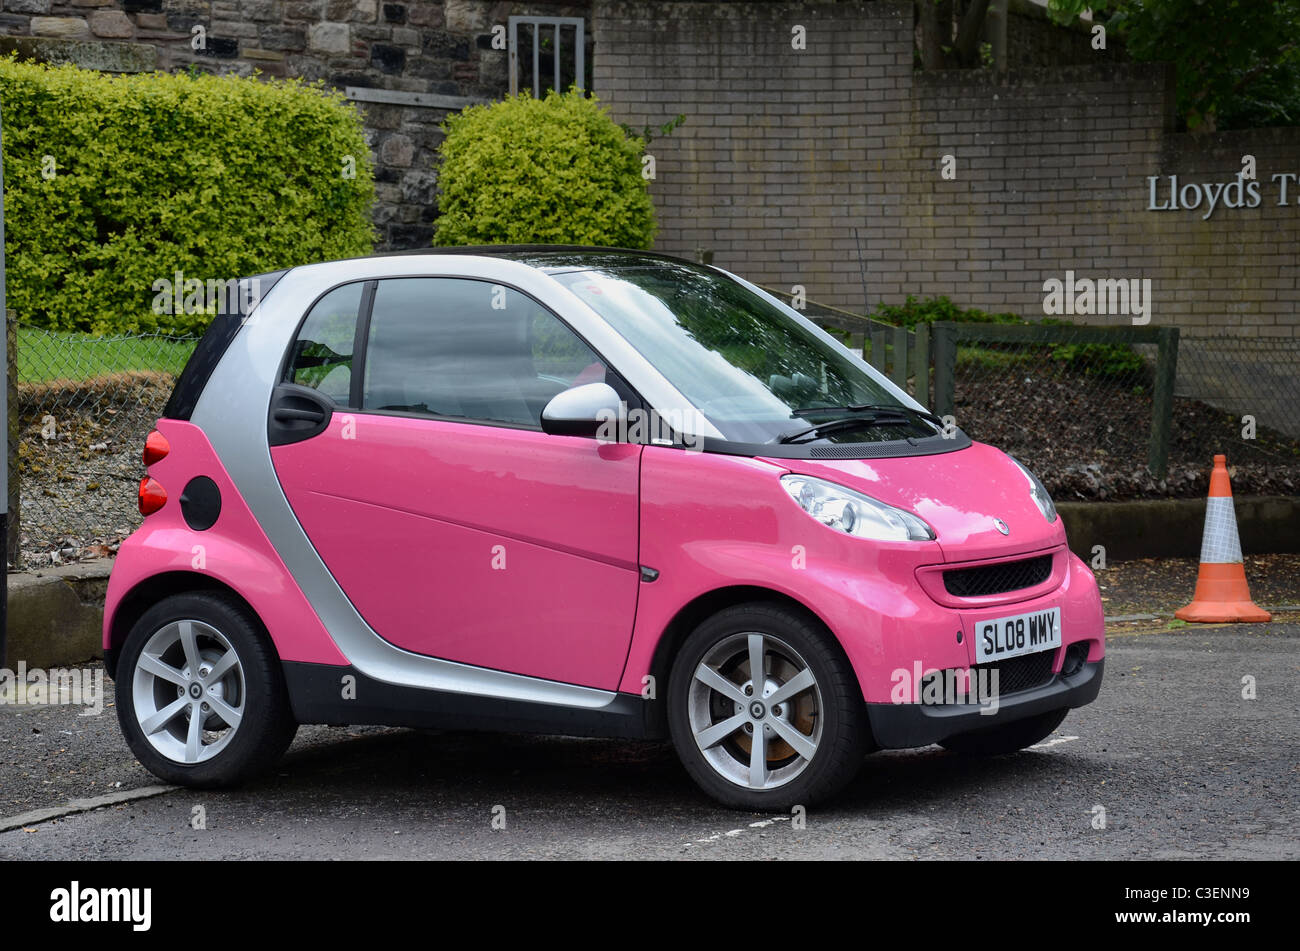 A pink and silver Smart Car parked outside Lloyds Banking Group offices in Edinburgh. - Stock Image